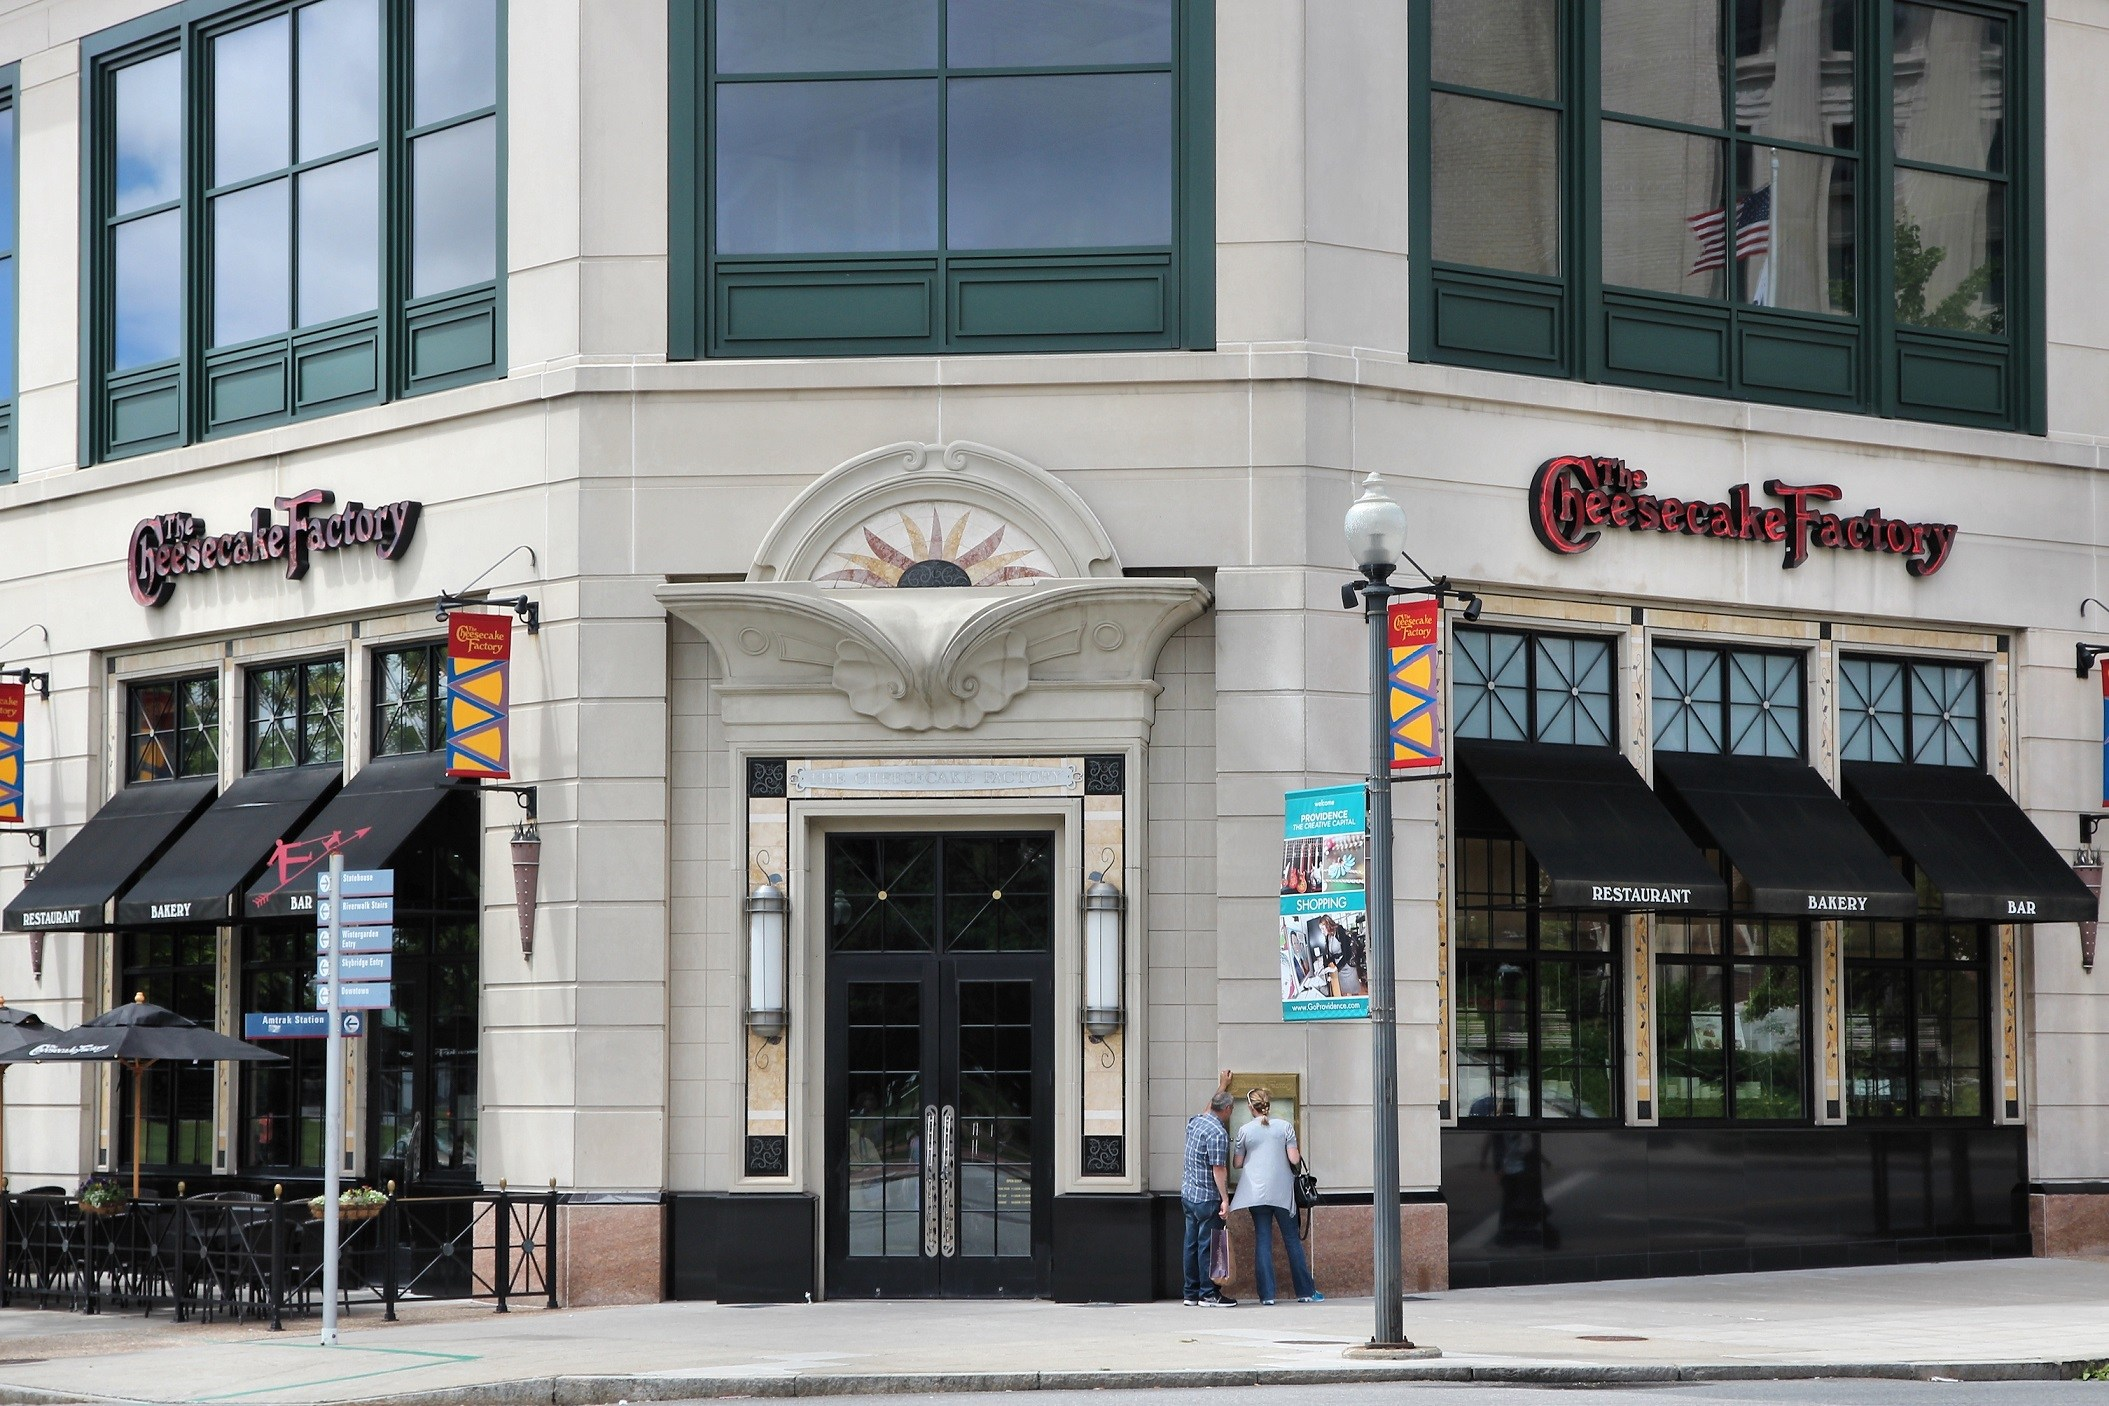 Cheesecake Factory restaurant exterior